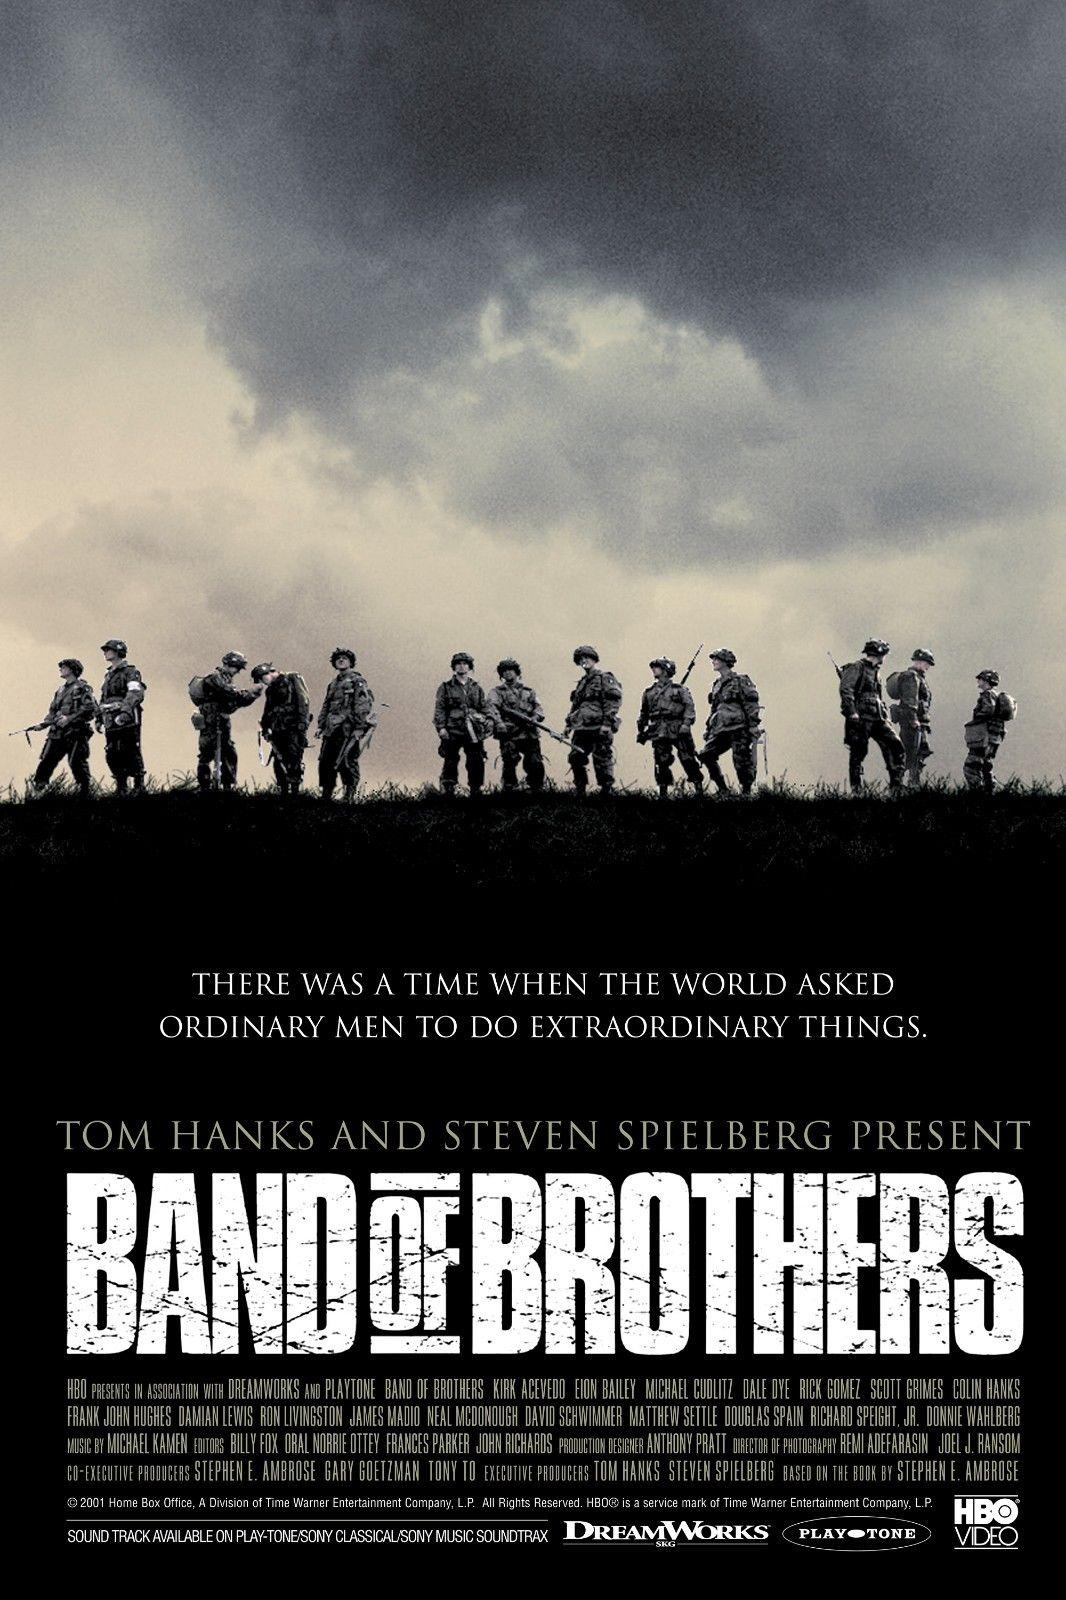 Band of brothers 2001 movie decor art silk poster 24x36inch 24x43inch